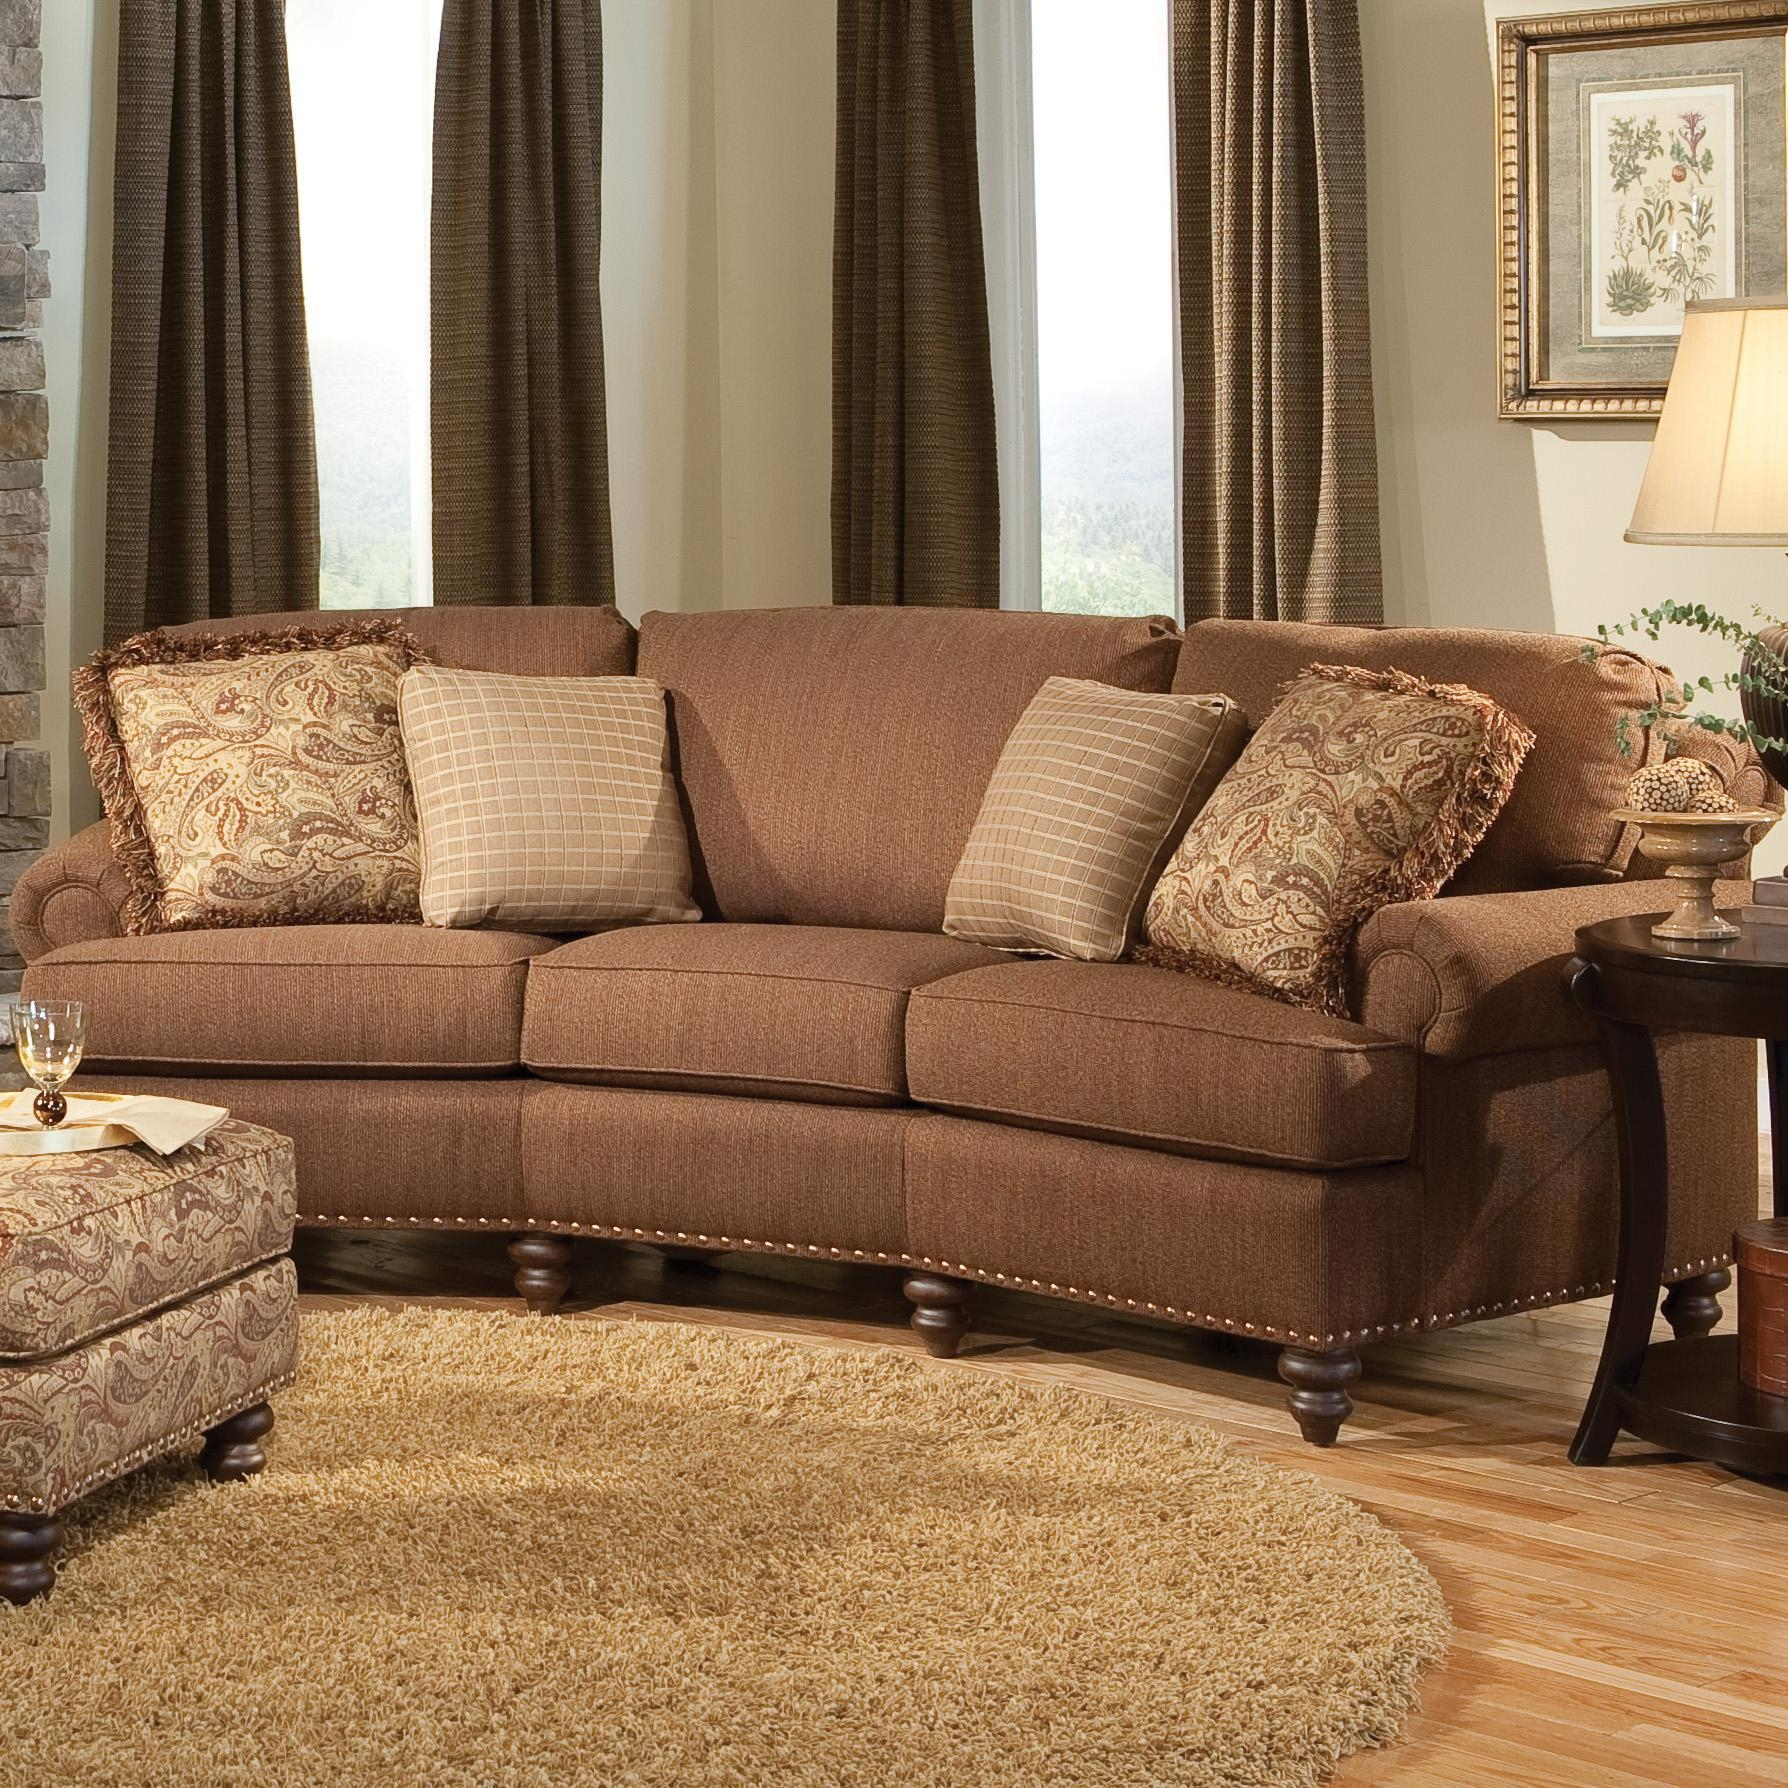 Curved Conversational Sofa With Nailhead Trimsmith Brothers With Regard To Smith Brothers Sofas (View 2 of 20)